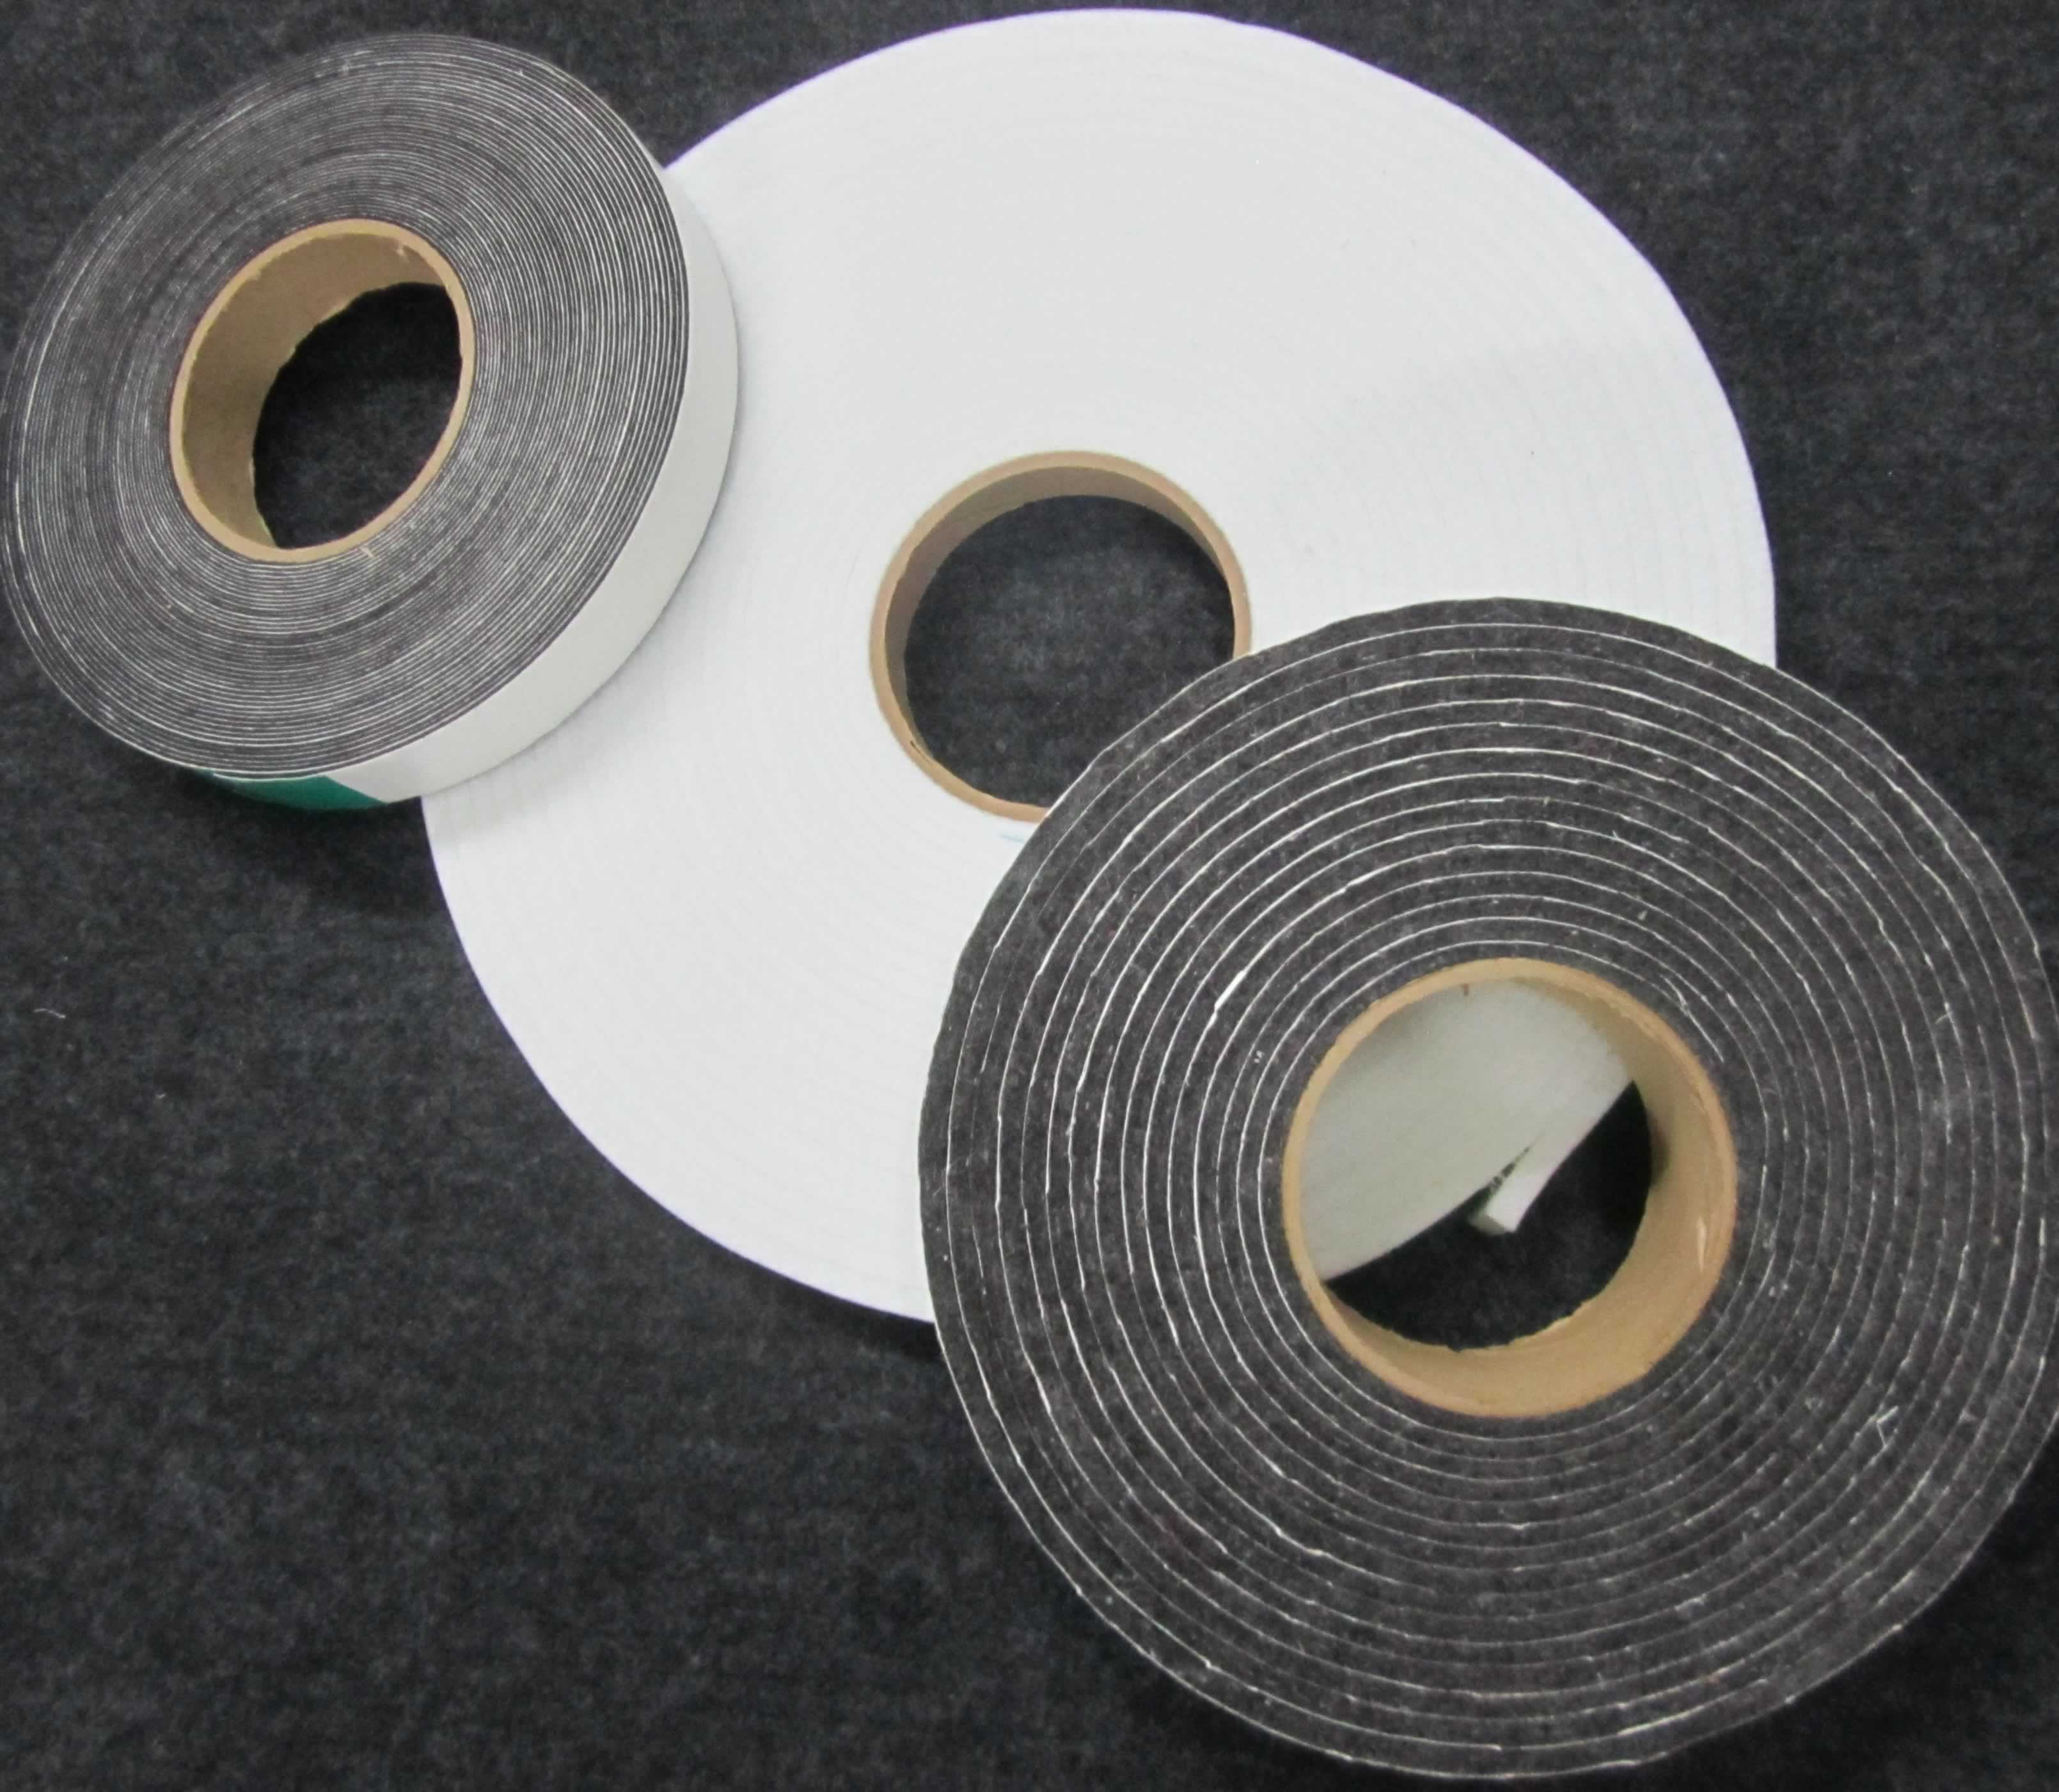 Adhesive felt transformed into felt tape with slitting services